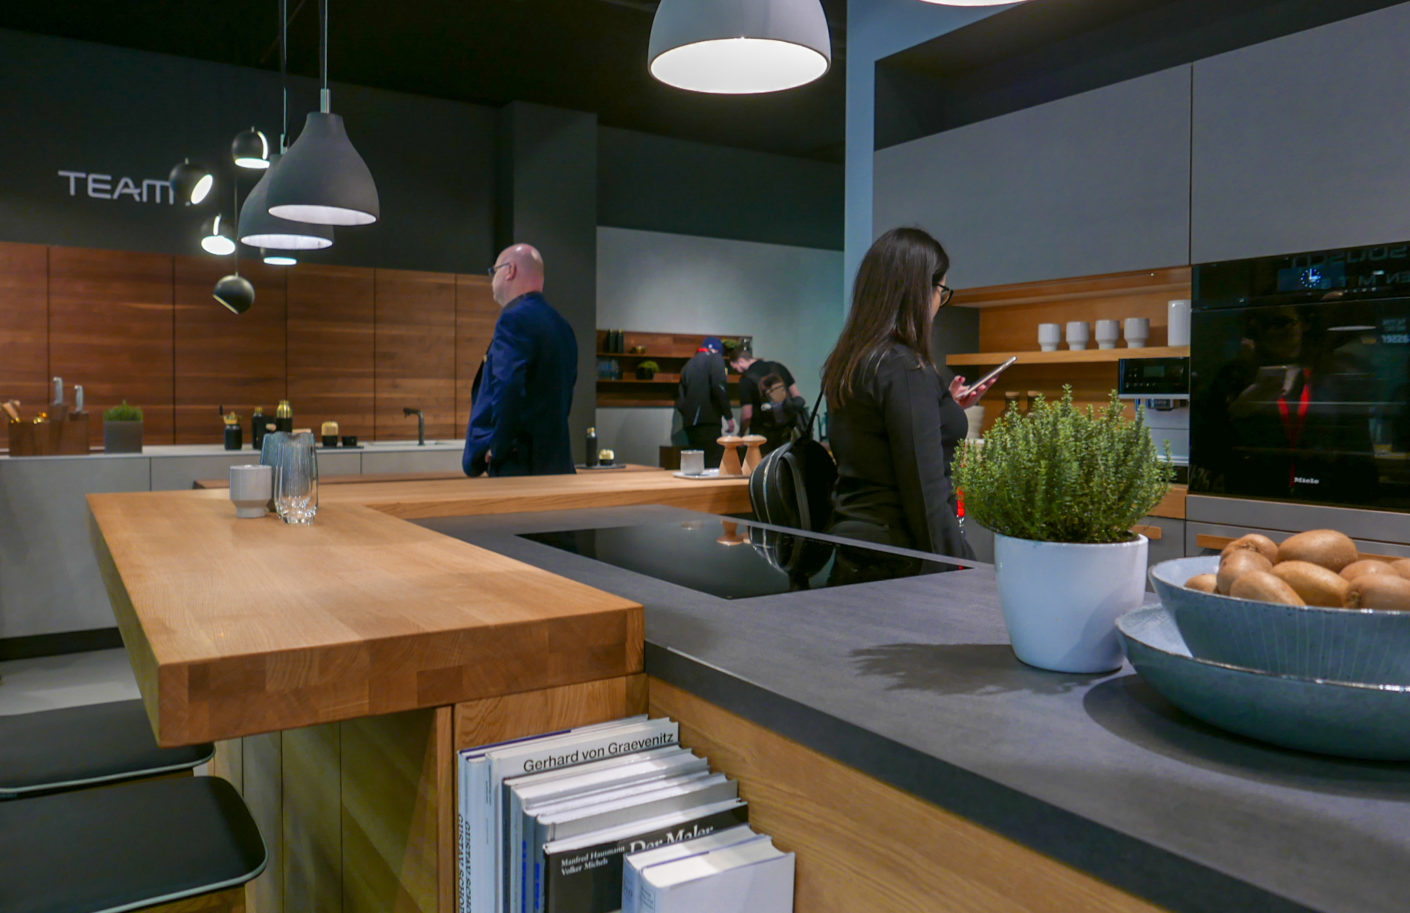 The solid three-layer panel, which Team 7 presented as a trade fair innovation at Living Kitchen 2019, can be used in many ways - here as a cantilevered kitchen counter, for example.